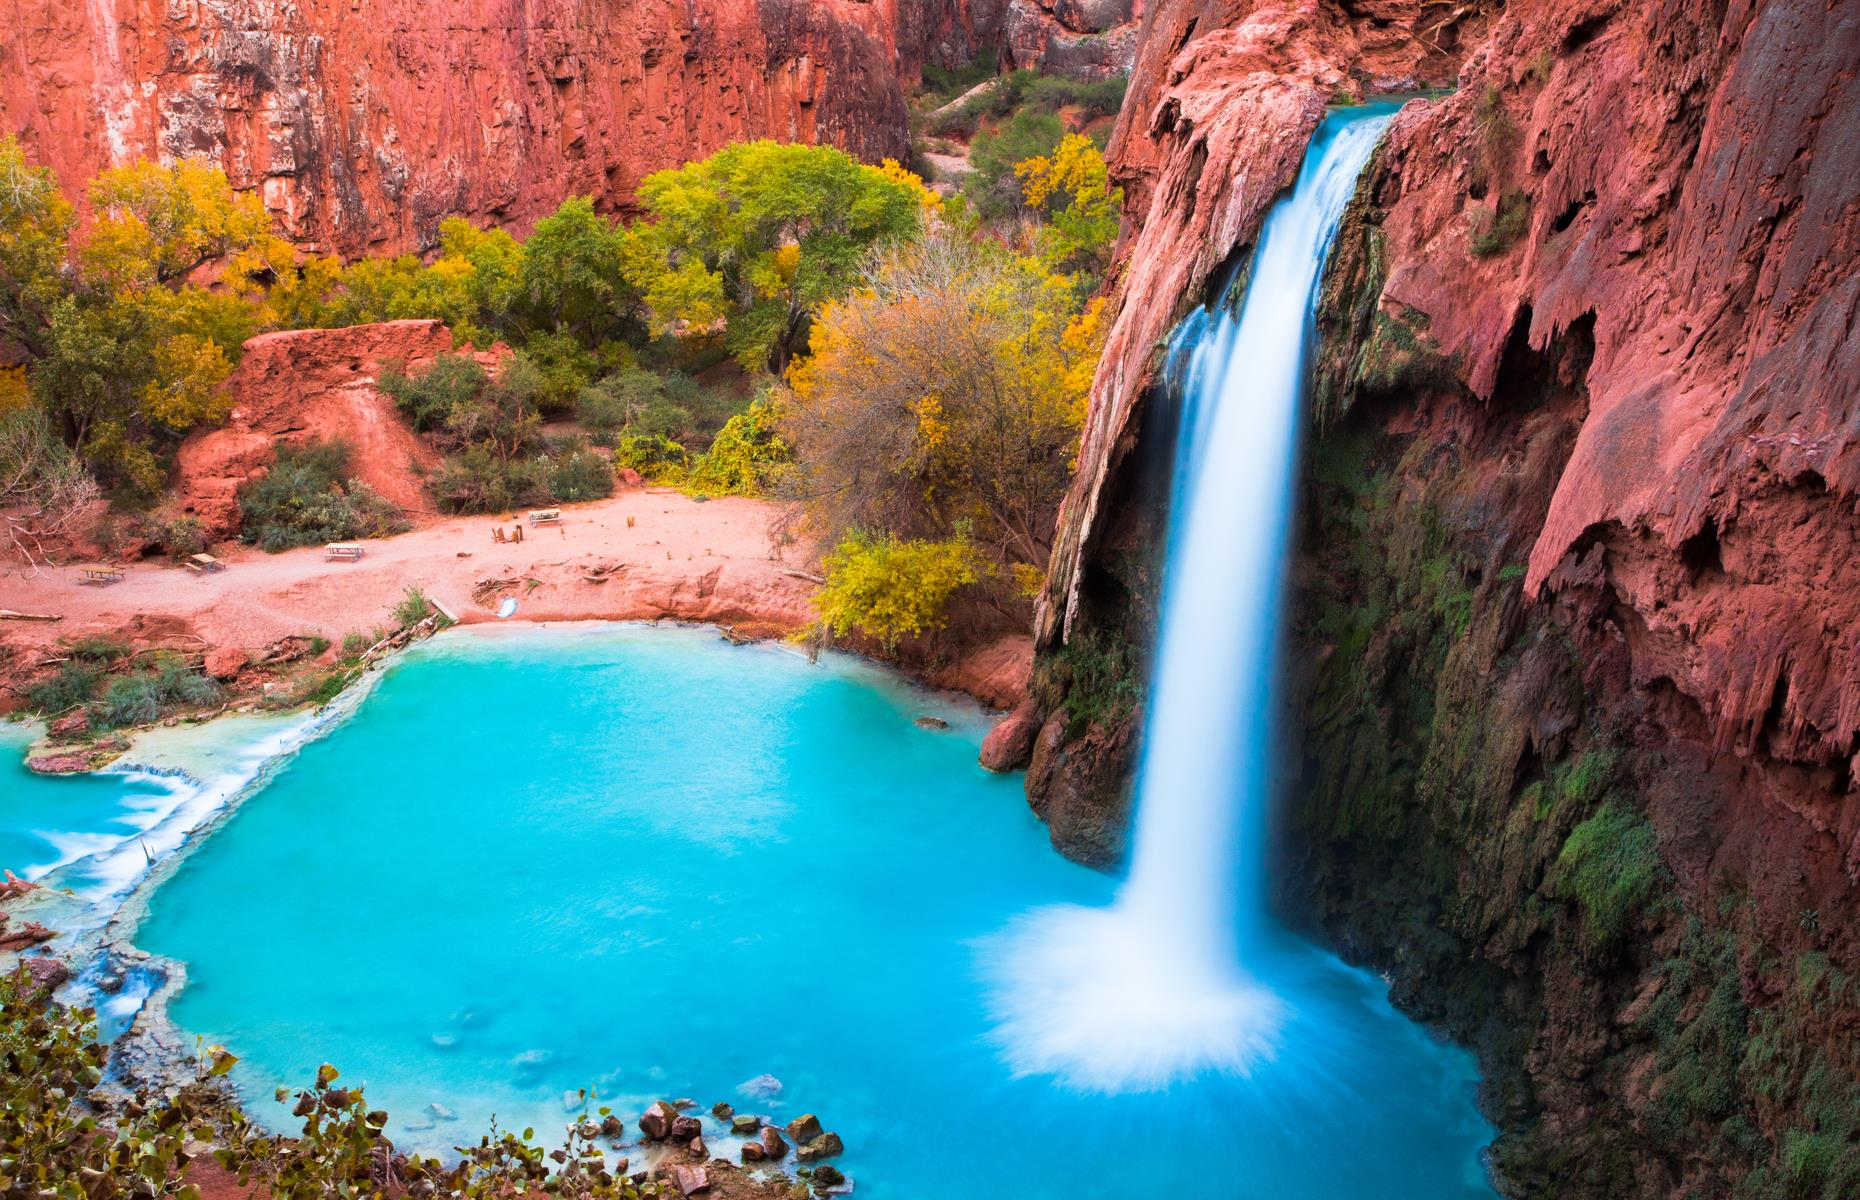 Slide 10 of 31: The colors of Havasu Falls look otherworldly but this eye-popping combination of orange-pink rock and a pool of cerulean blue, fed by a silken cascade, is definitely real. One of five waterfalls on the Havasupai Indian Reservation, within the Grand Canyon, the water owes its vibrant hue to calcium carbonate in the water. Take a look at more of America's most beautiful waterfalls here.